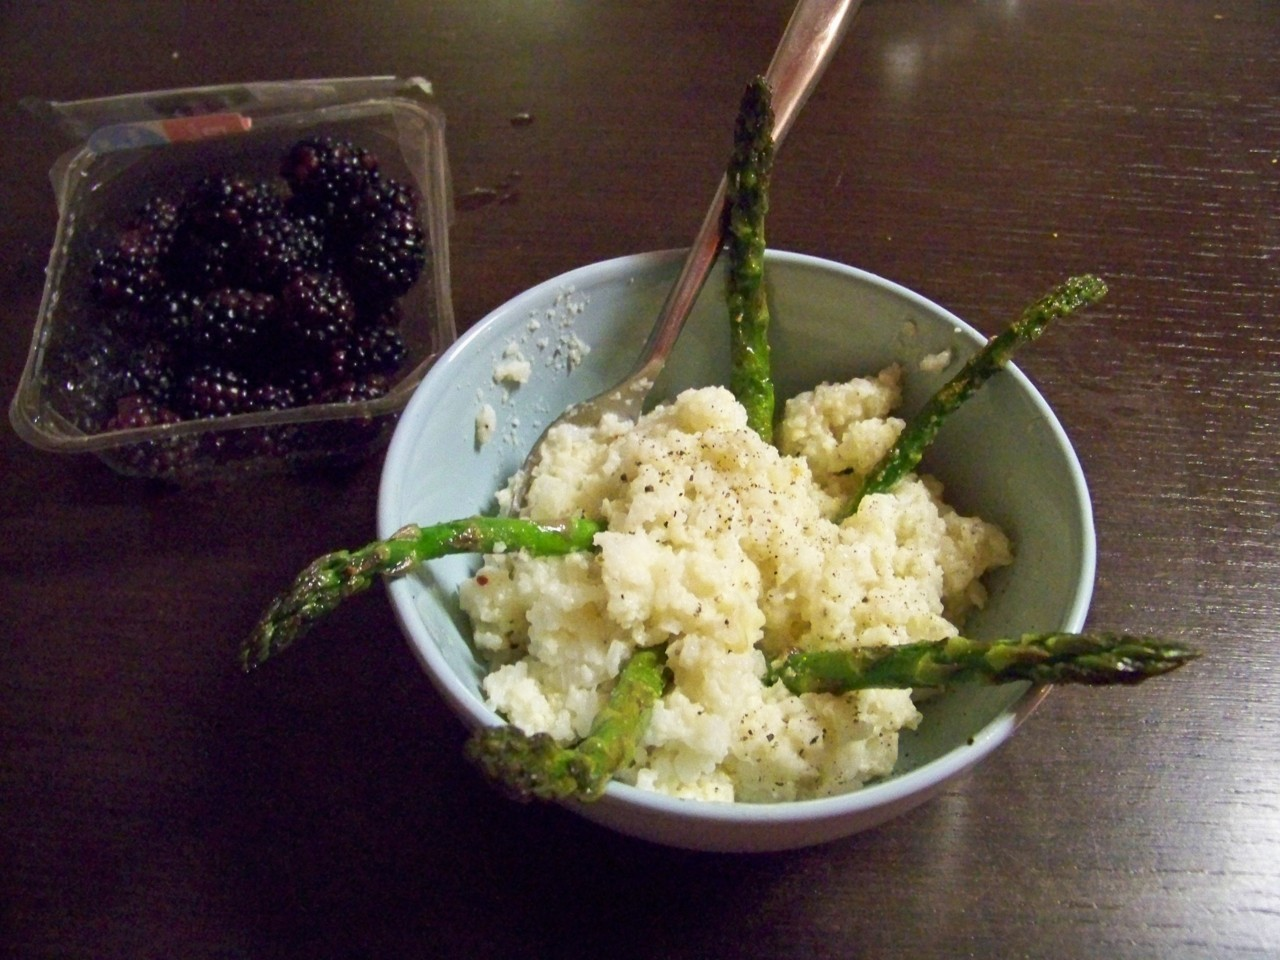 Sticky rice, scrambled egg, asparagus